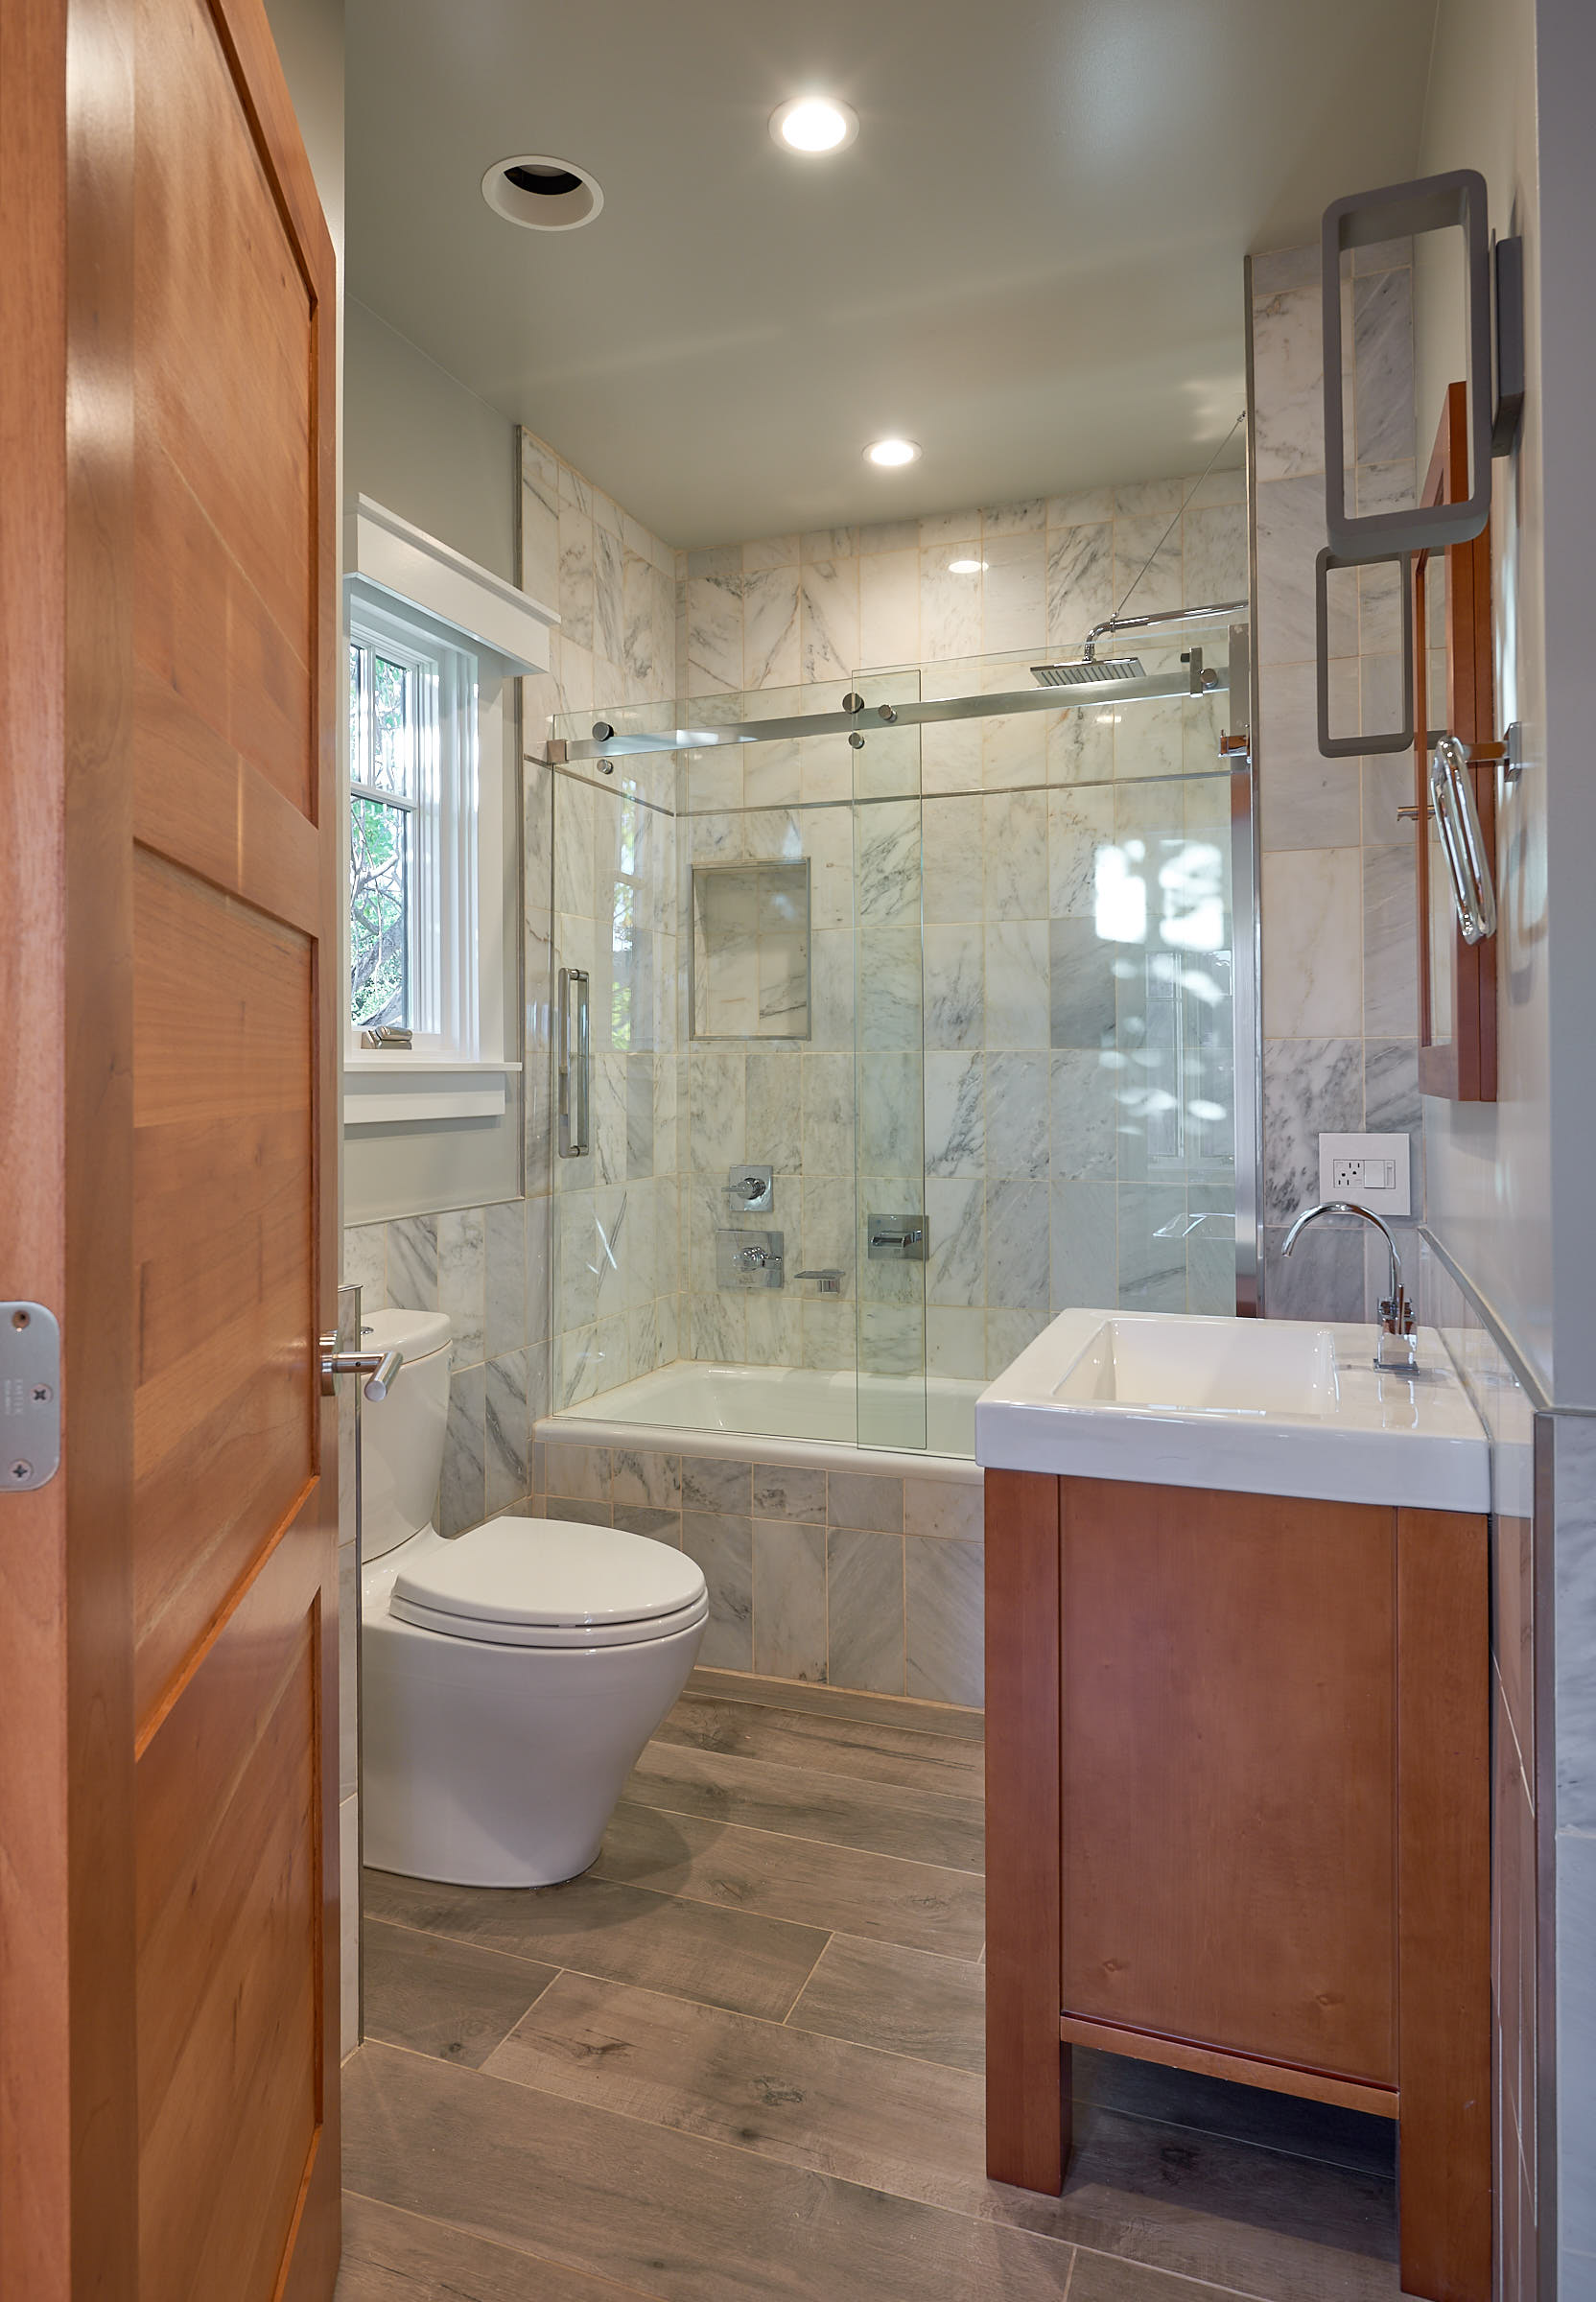 White Carrera Marble tile is a timeless material used in verticals, Porcelain tile floor looks like driftwood and contrasts nicely with the wood accents.